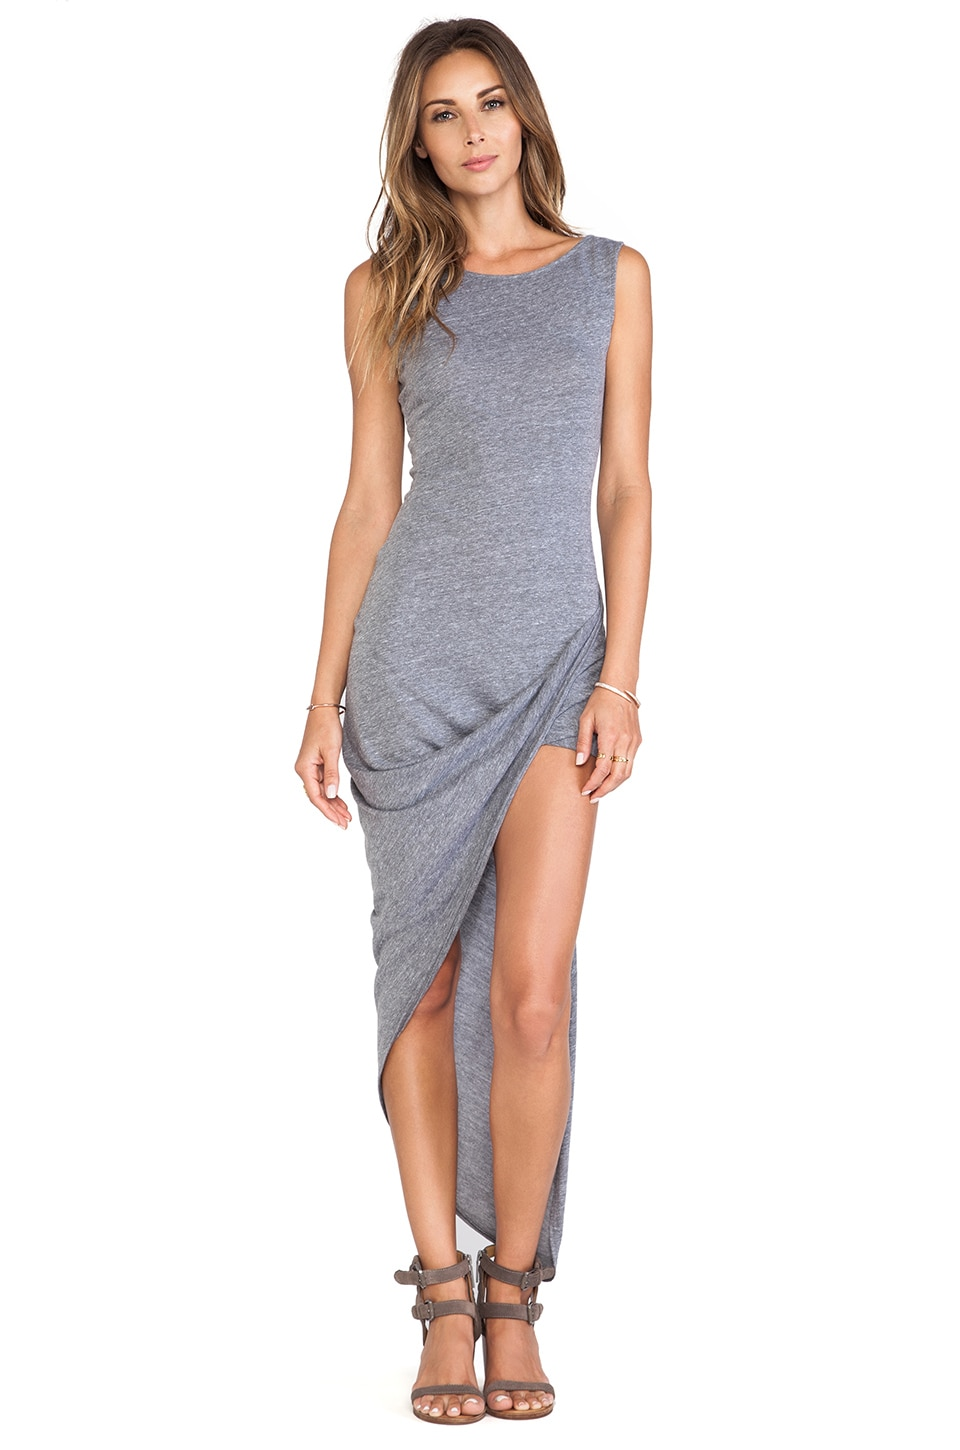 De Lacy DeLacy Dawn Dress in Grey